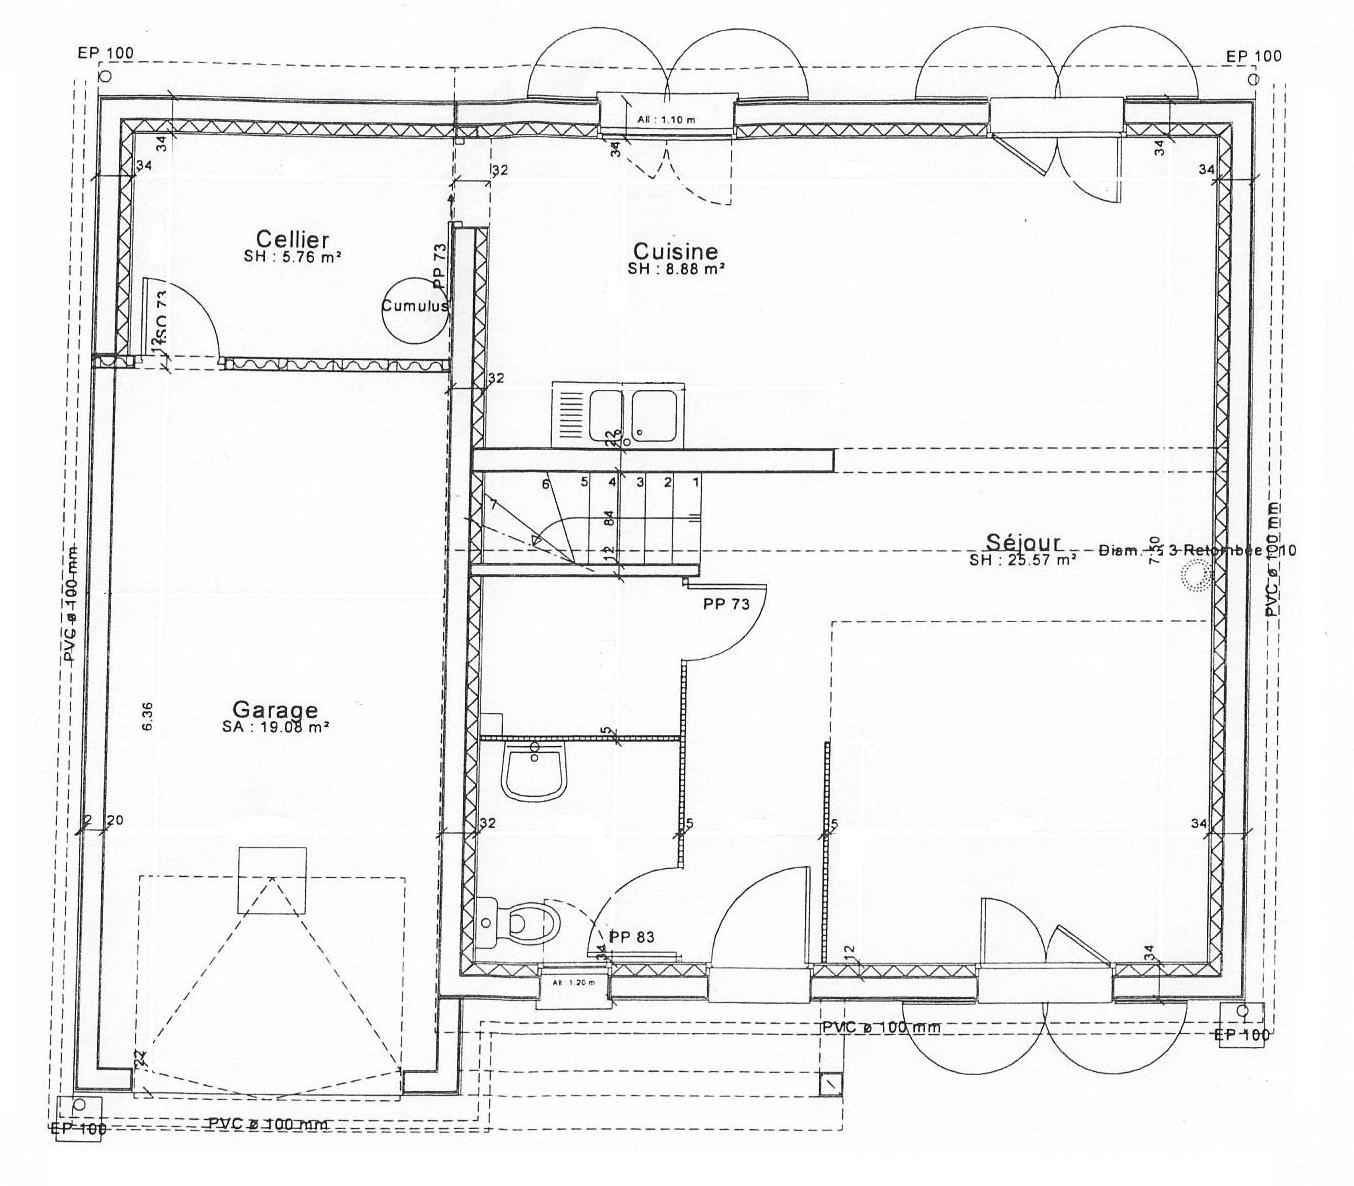 Maison cl en main ardennes 08 et marne 51 for Plan maison en t